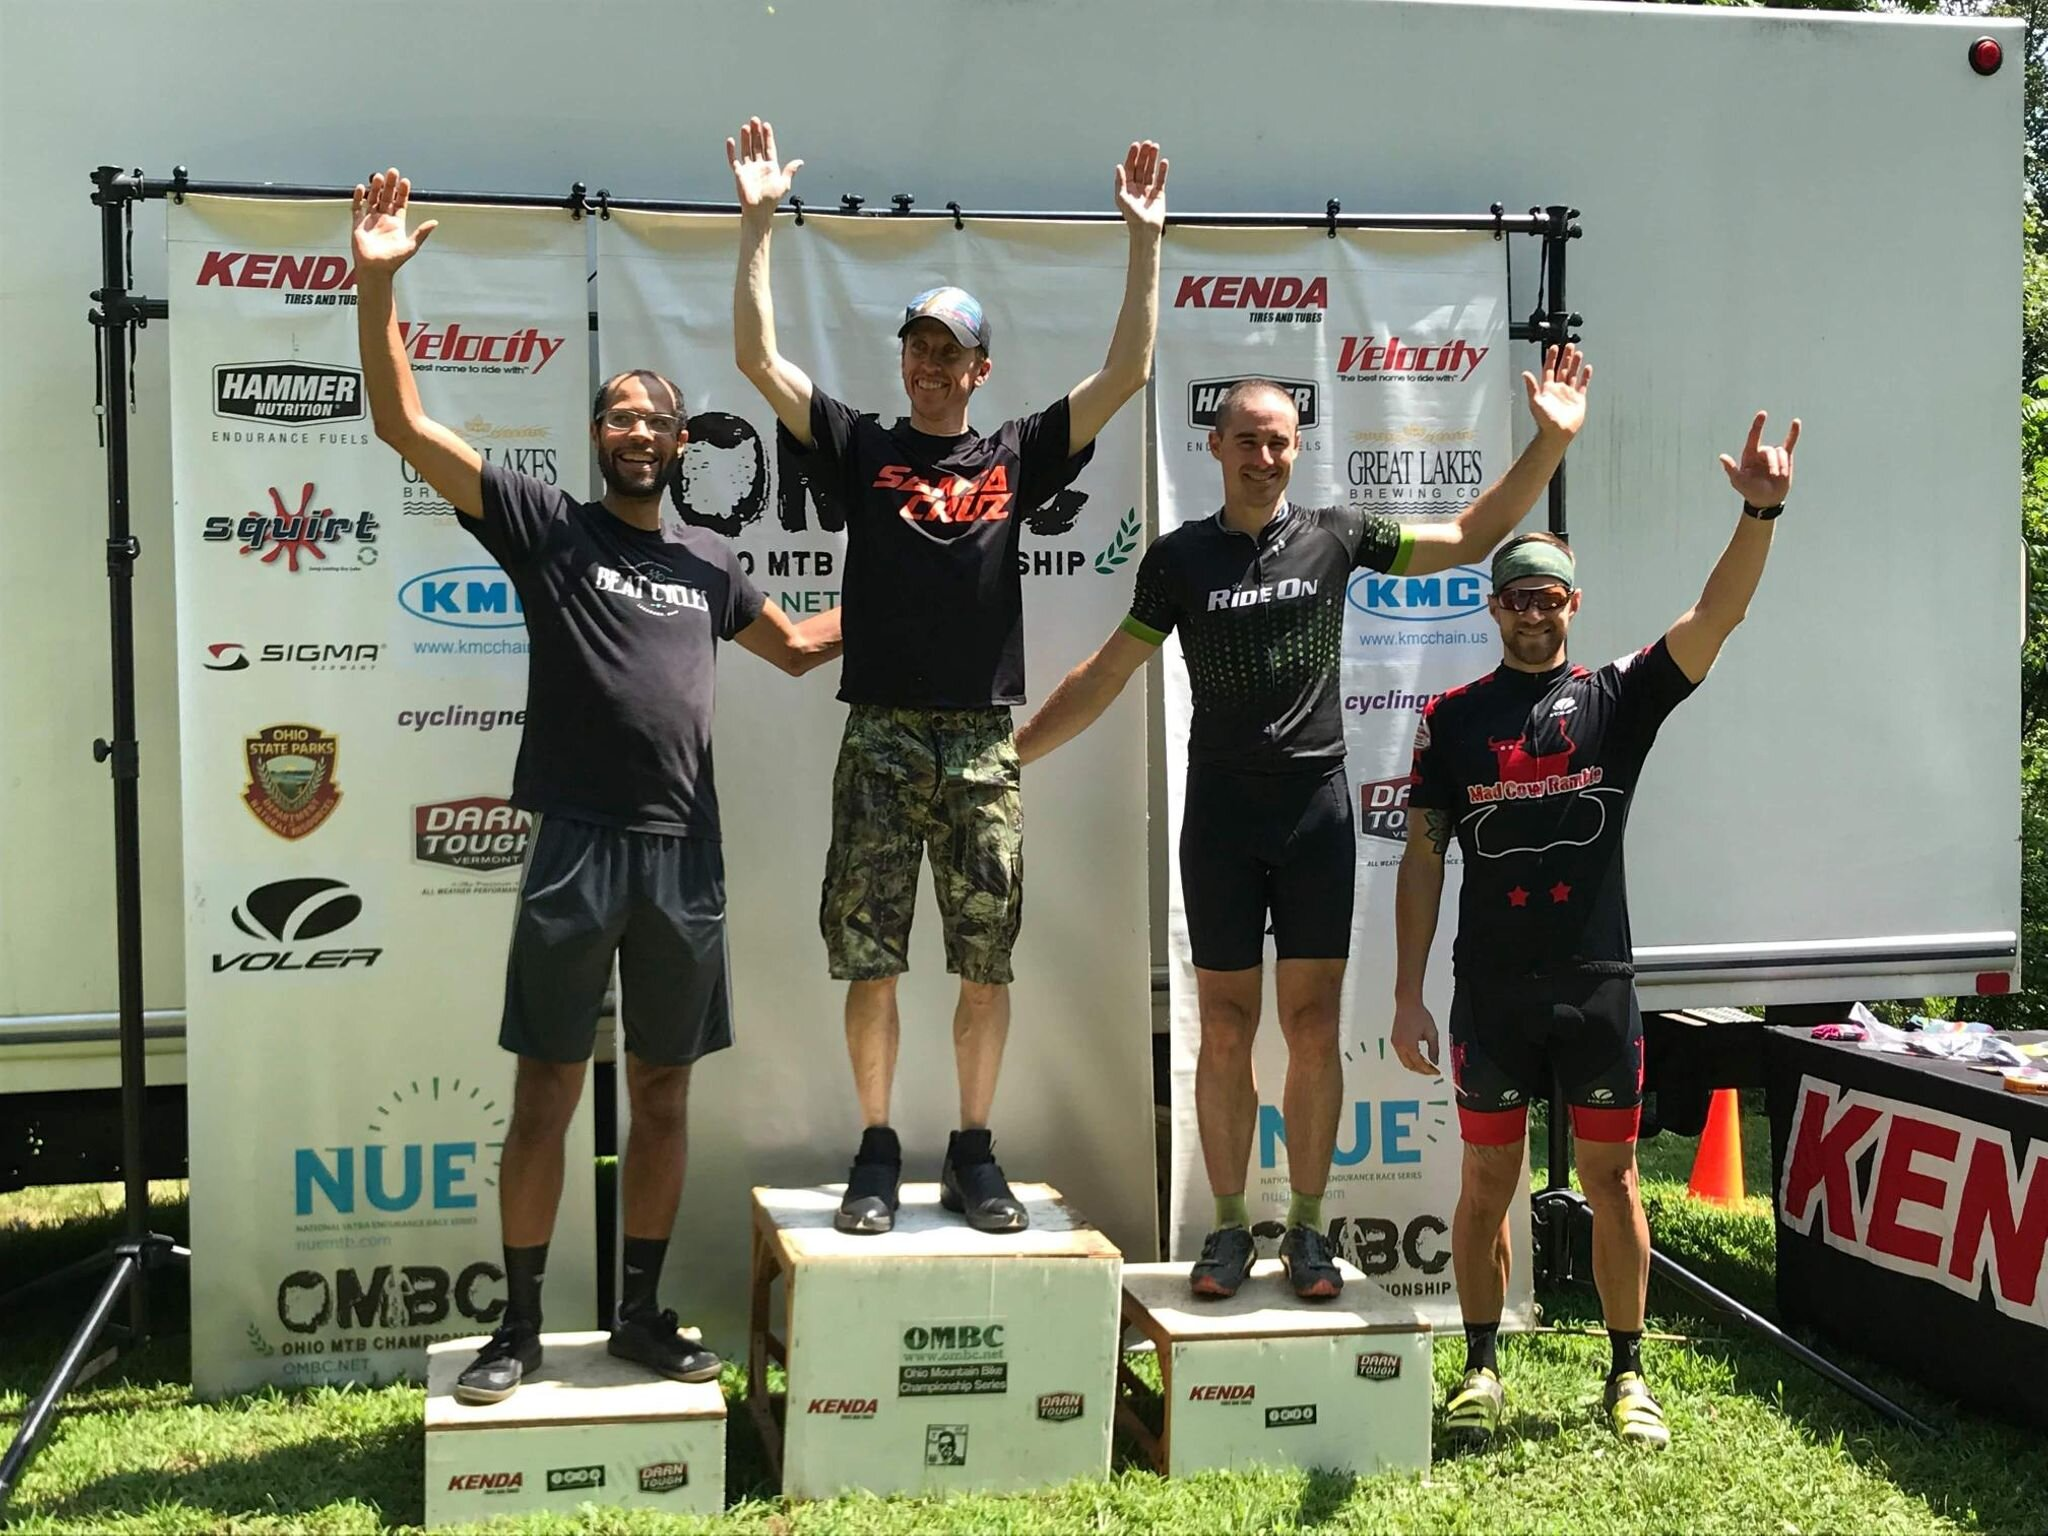 Why I look like I have a beer belly? I don't know. But 3rd place podium finish, heck yeah!